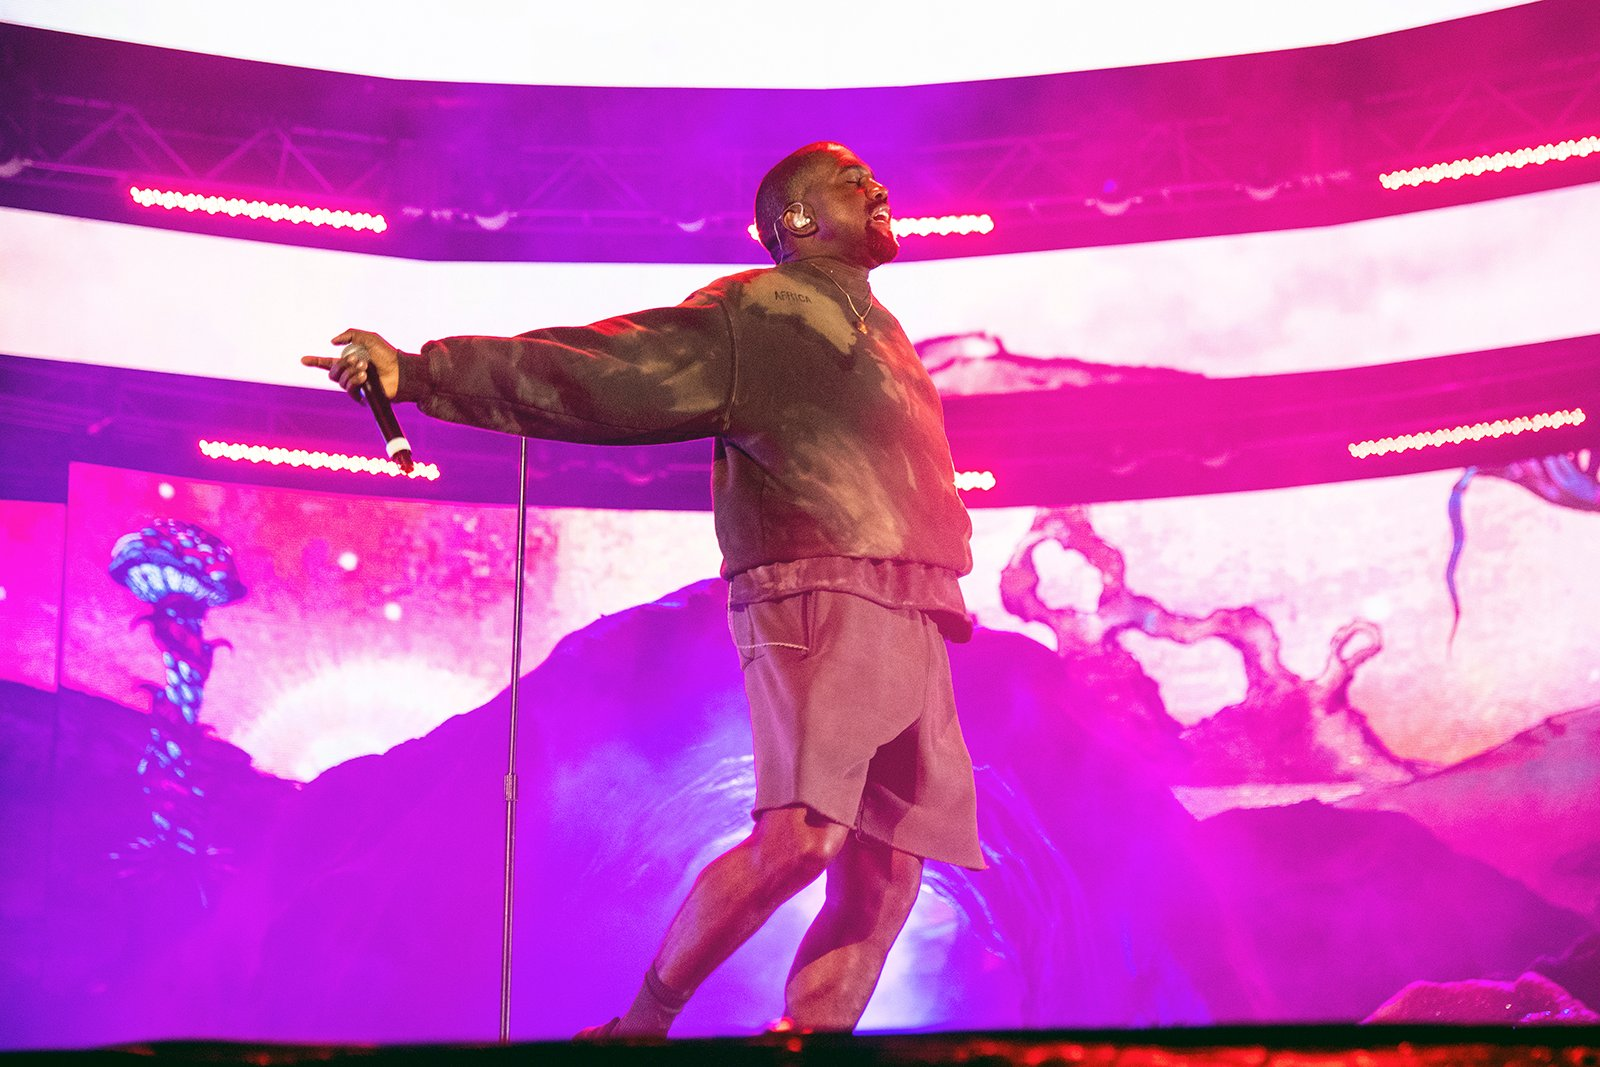 Kanye West performs with Kid Cudi at the Coachella Music and Arts Festival at the Empire Polo Club on April 20, 2019, in Indio, California. (Photo by Amy Harris/Invision/AP)